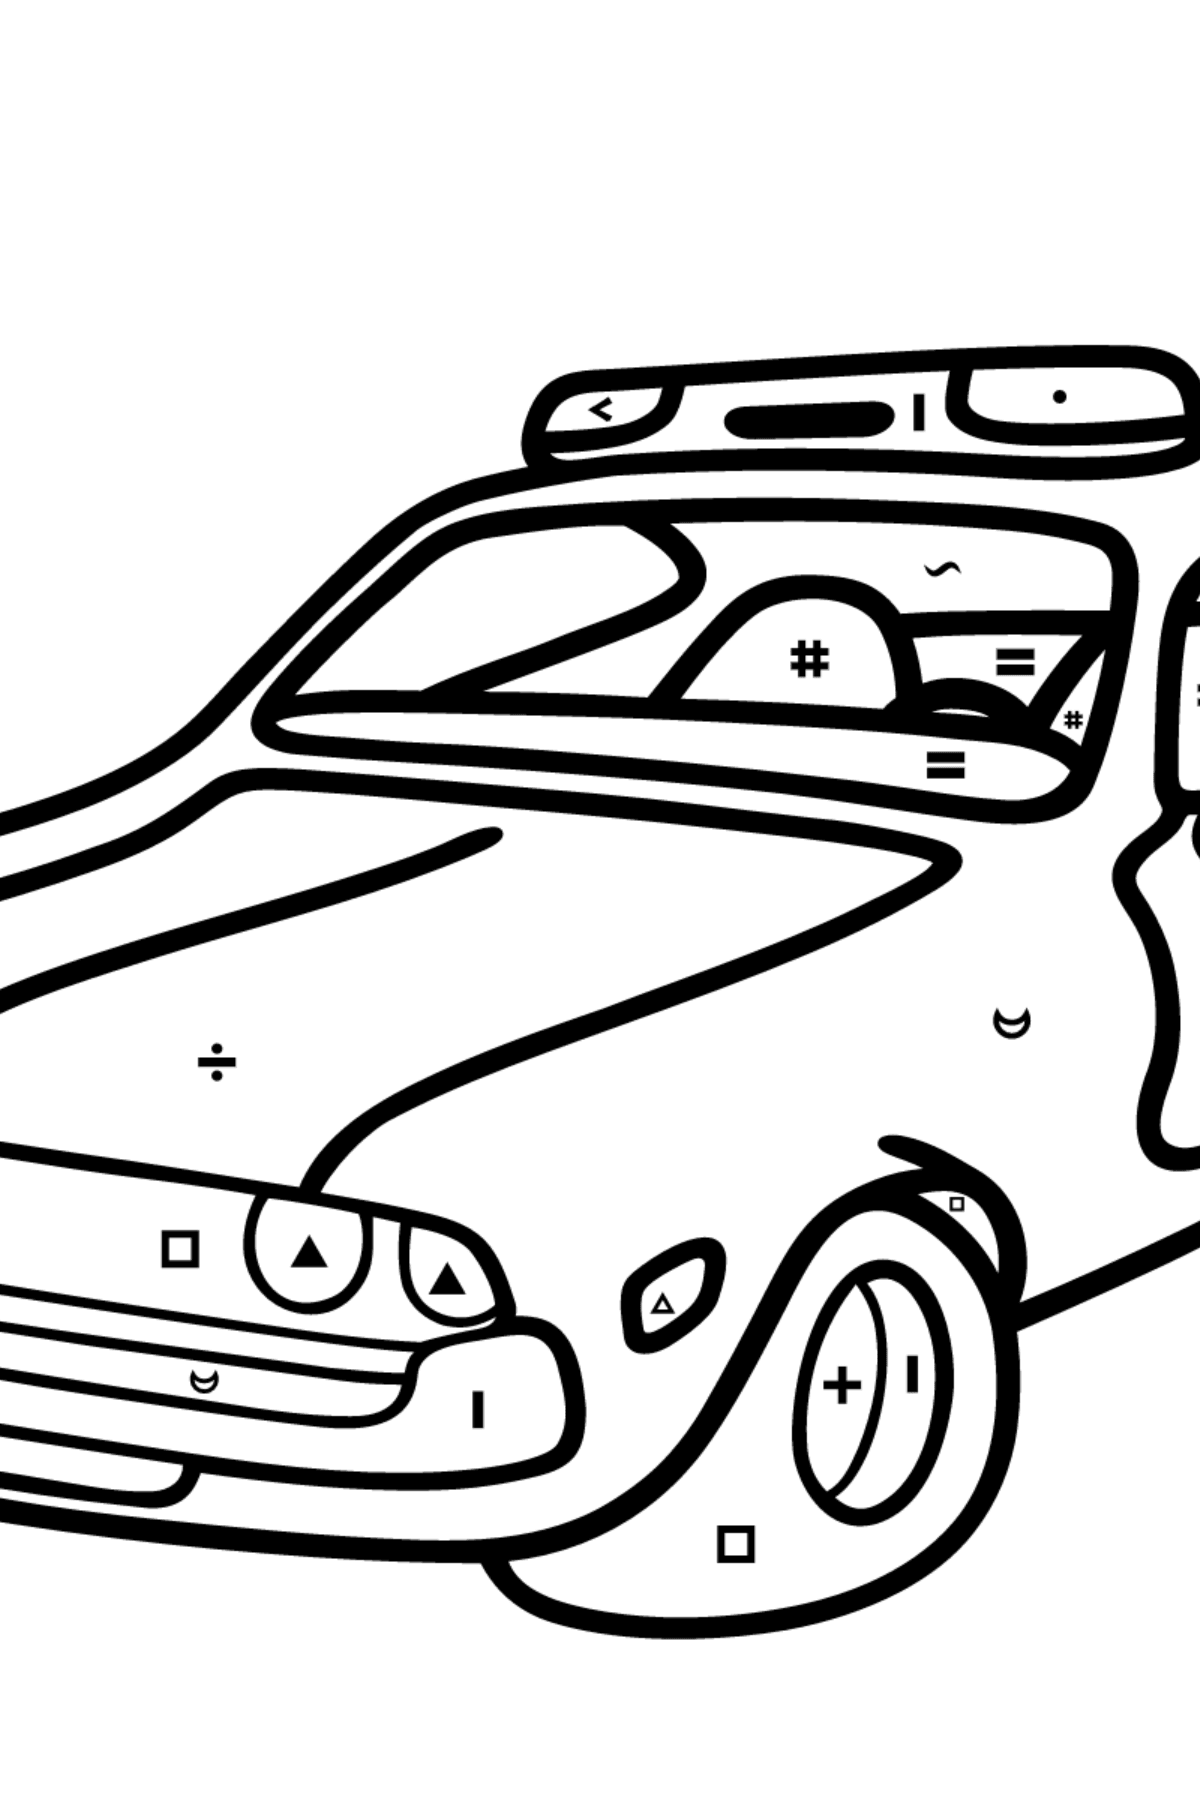 Coloring Page - A Dark Gray Police Car for Kids  - Color by Special Symbols